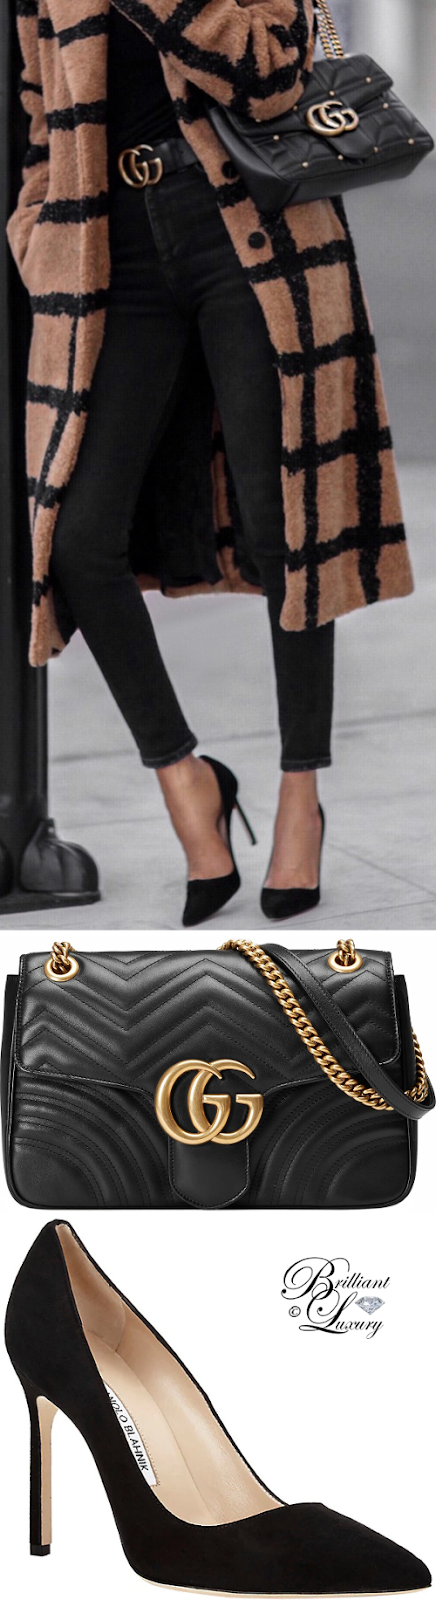 Brilliant Luxury ♦ Gucci Marmont bag and Manolo Blahnik BB pumps #black #streetstyle